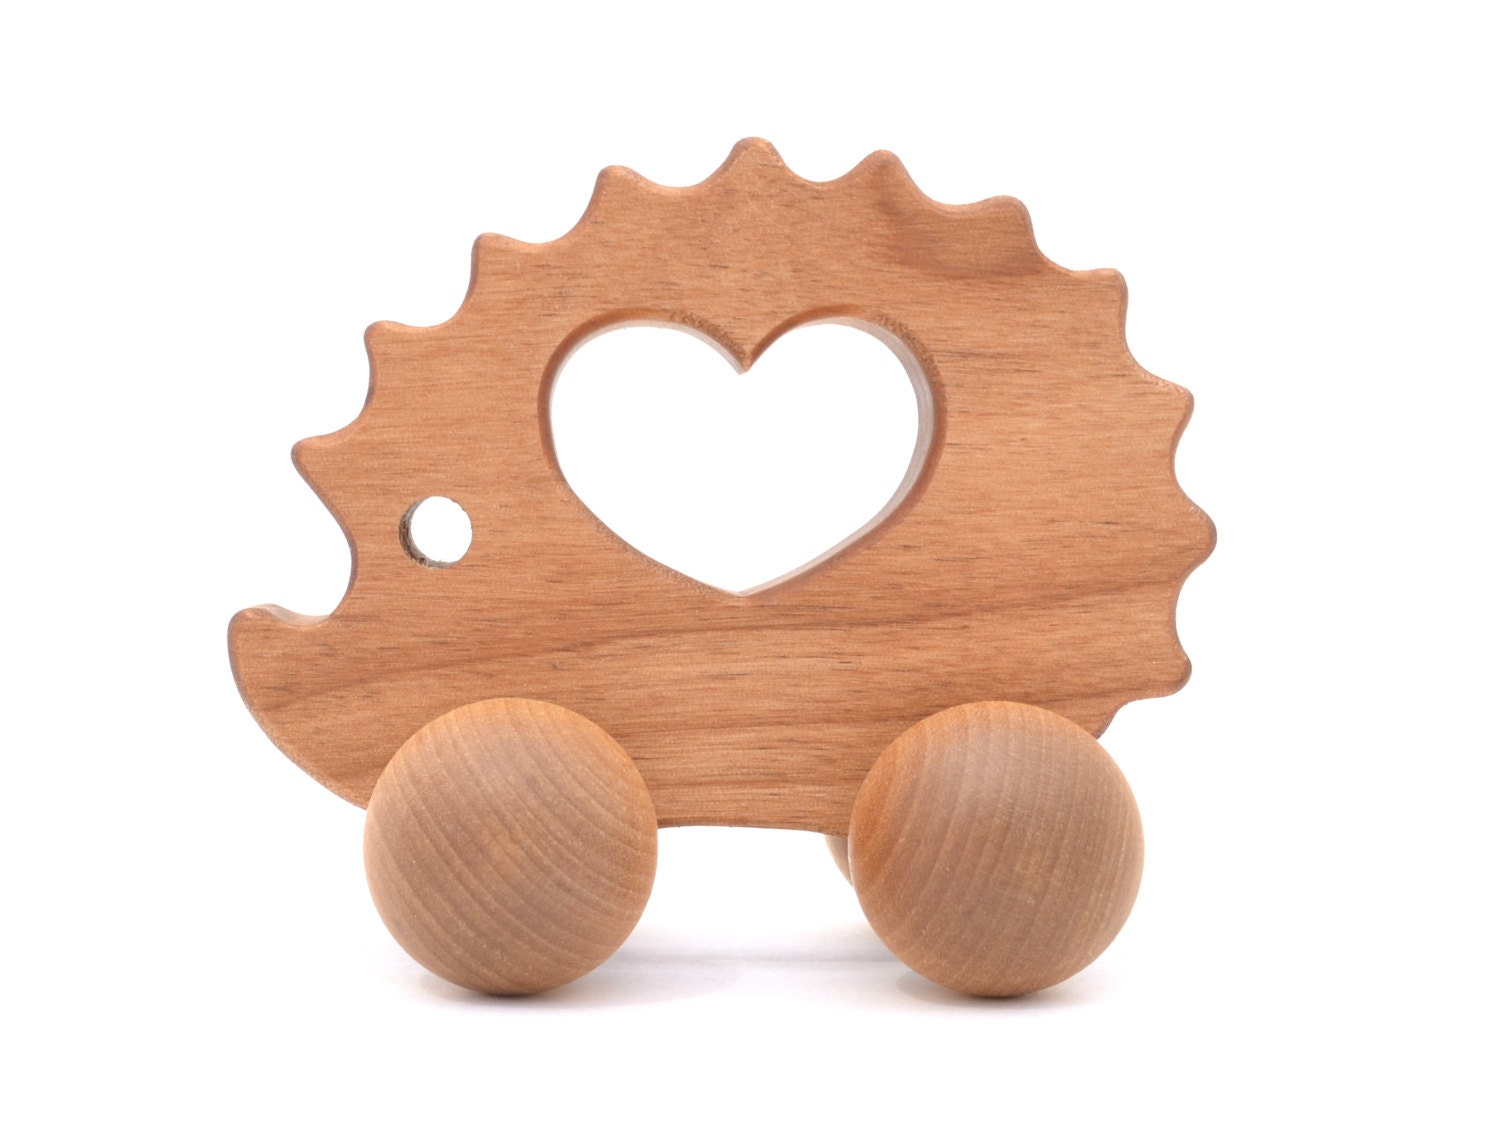 Toys Are Us Wooden Toys : Organic wooden toy waldorf wood animal natural